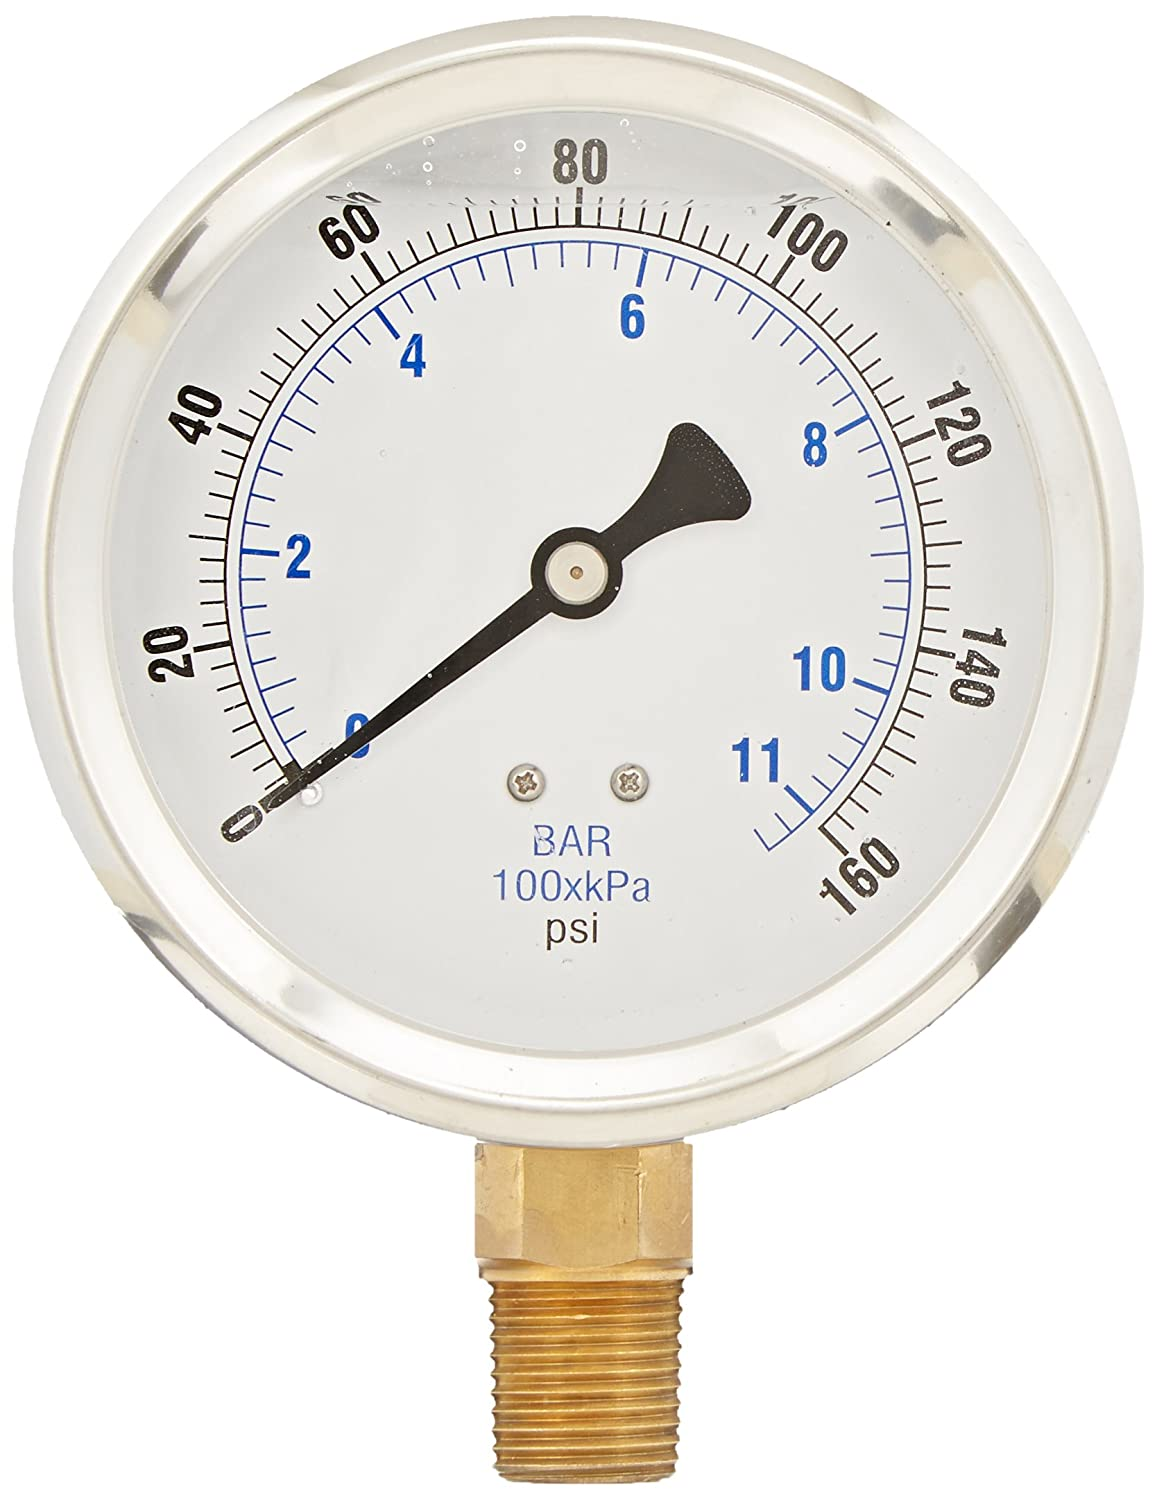 PIC Gauge 201L 402F 4 Dial 0 160 psi Range 1 2 Male NPT Connection Size Bottom Mount Glycerine Filled Pressure Gauge with a Stainless Steel Case Brass Internals Stainless Steel Bezel and Polycarbonate Lens